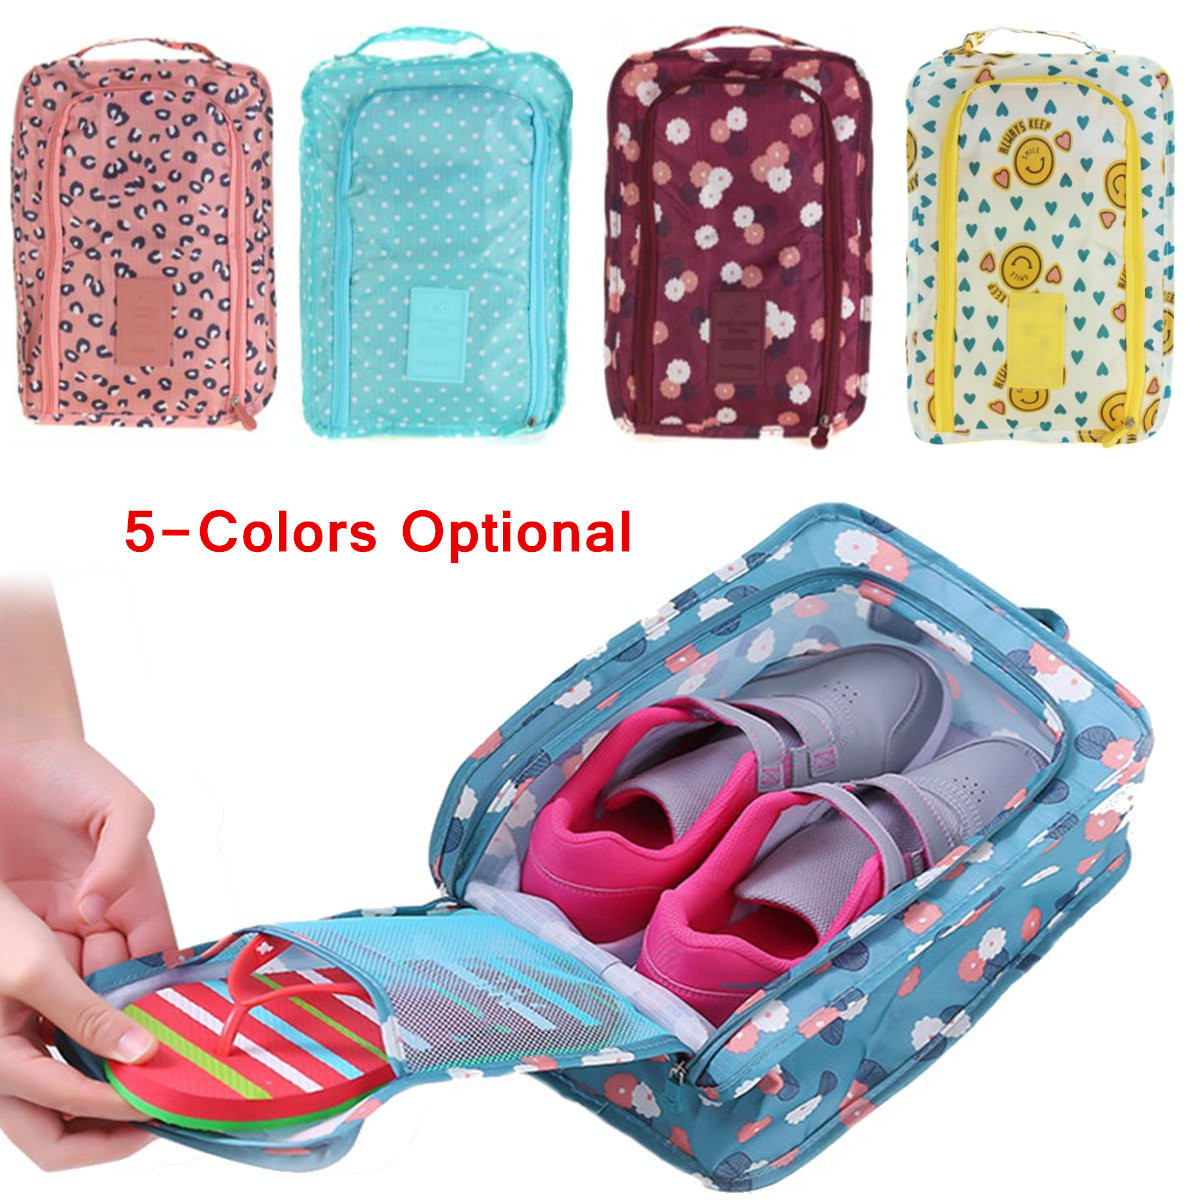 30 X 21 X 11cm Waterproof Travel Tote Shoes Storage Bag Oxford Cloth Portable Organizer Bags Carry